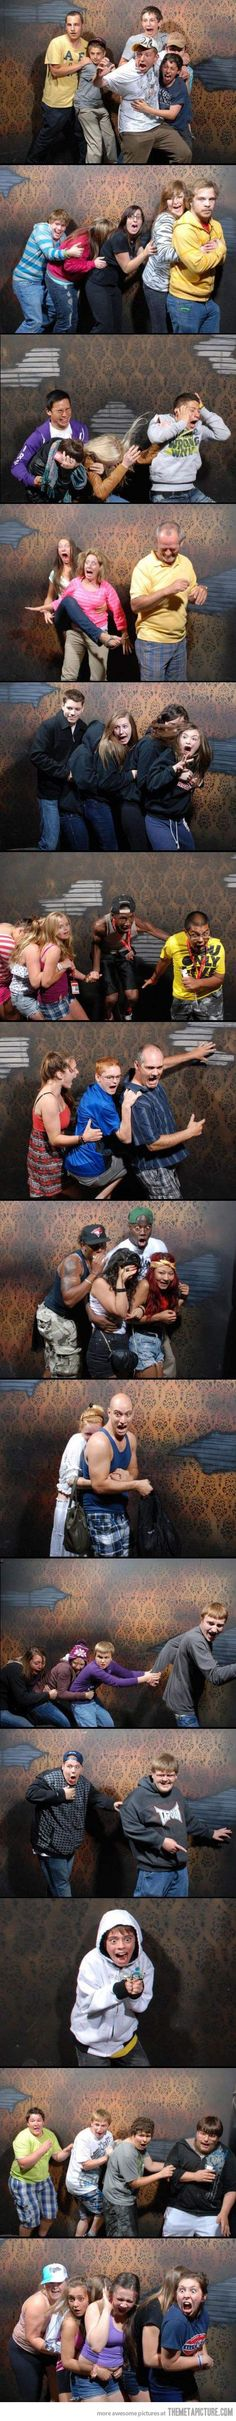 Haunted House pictures. :)